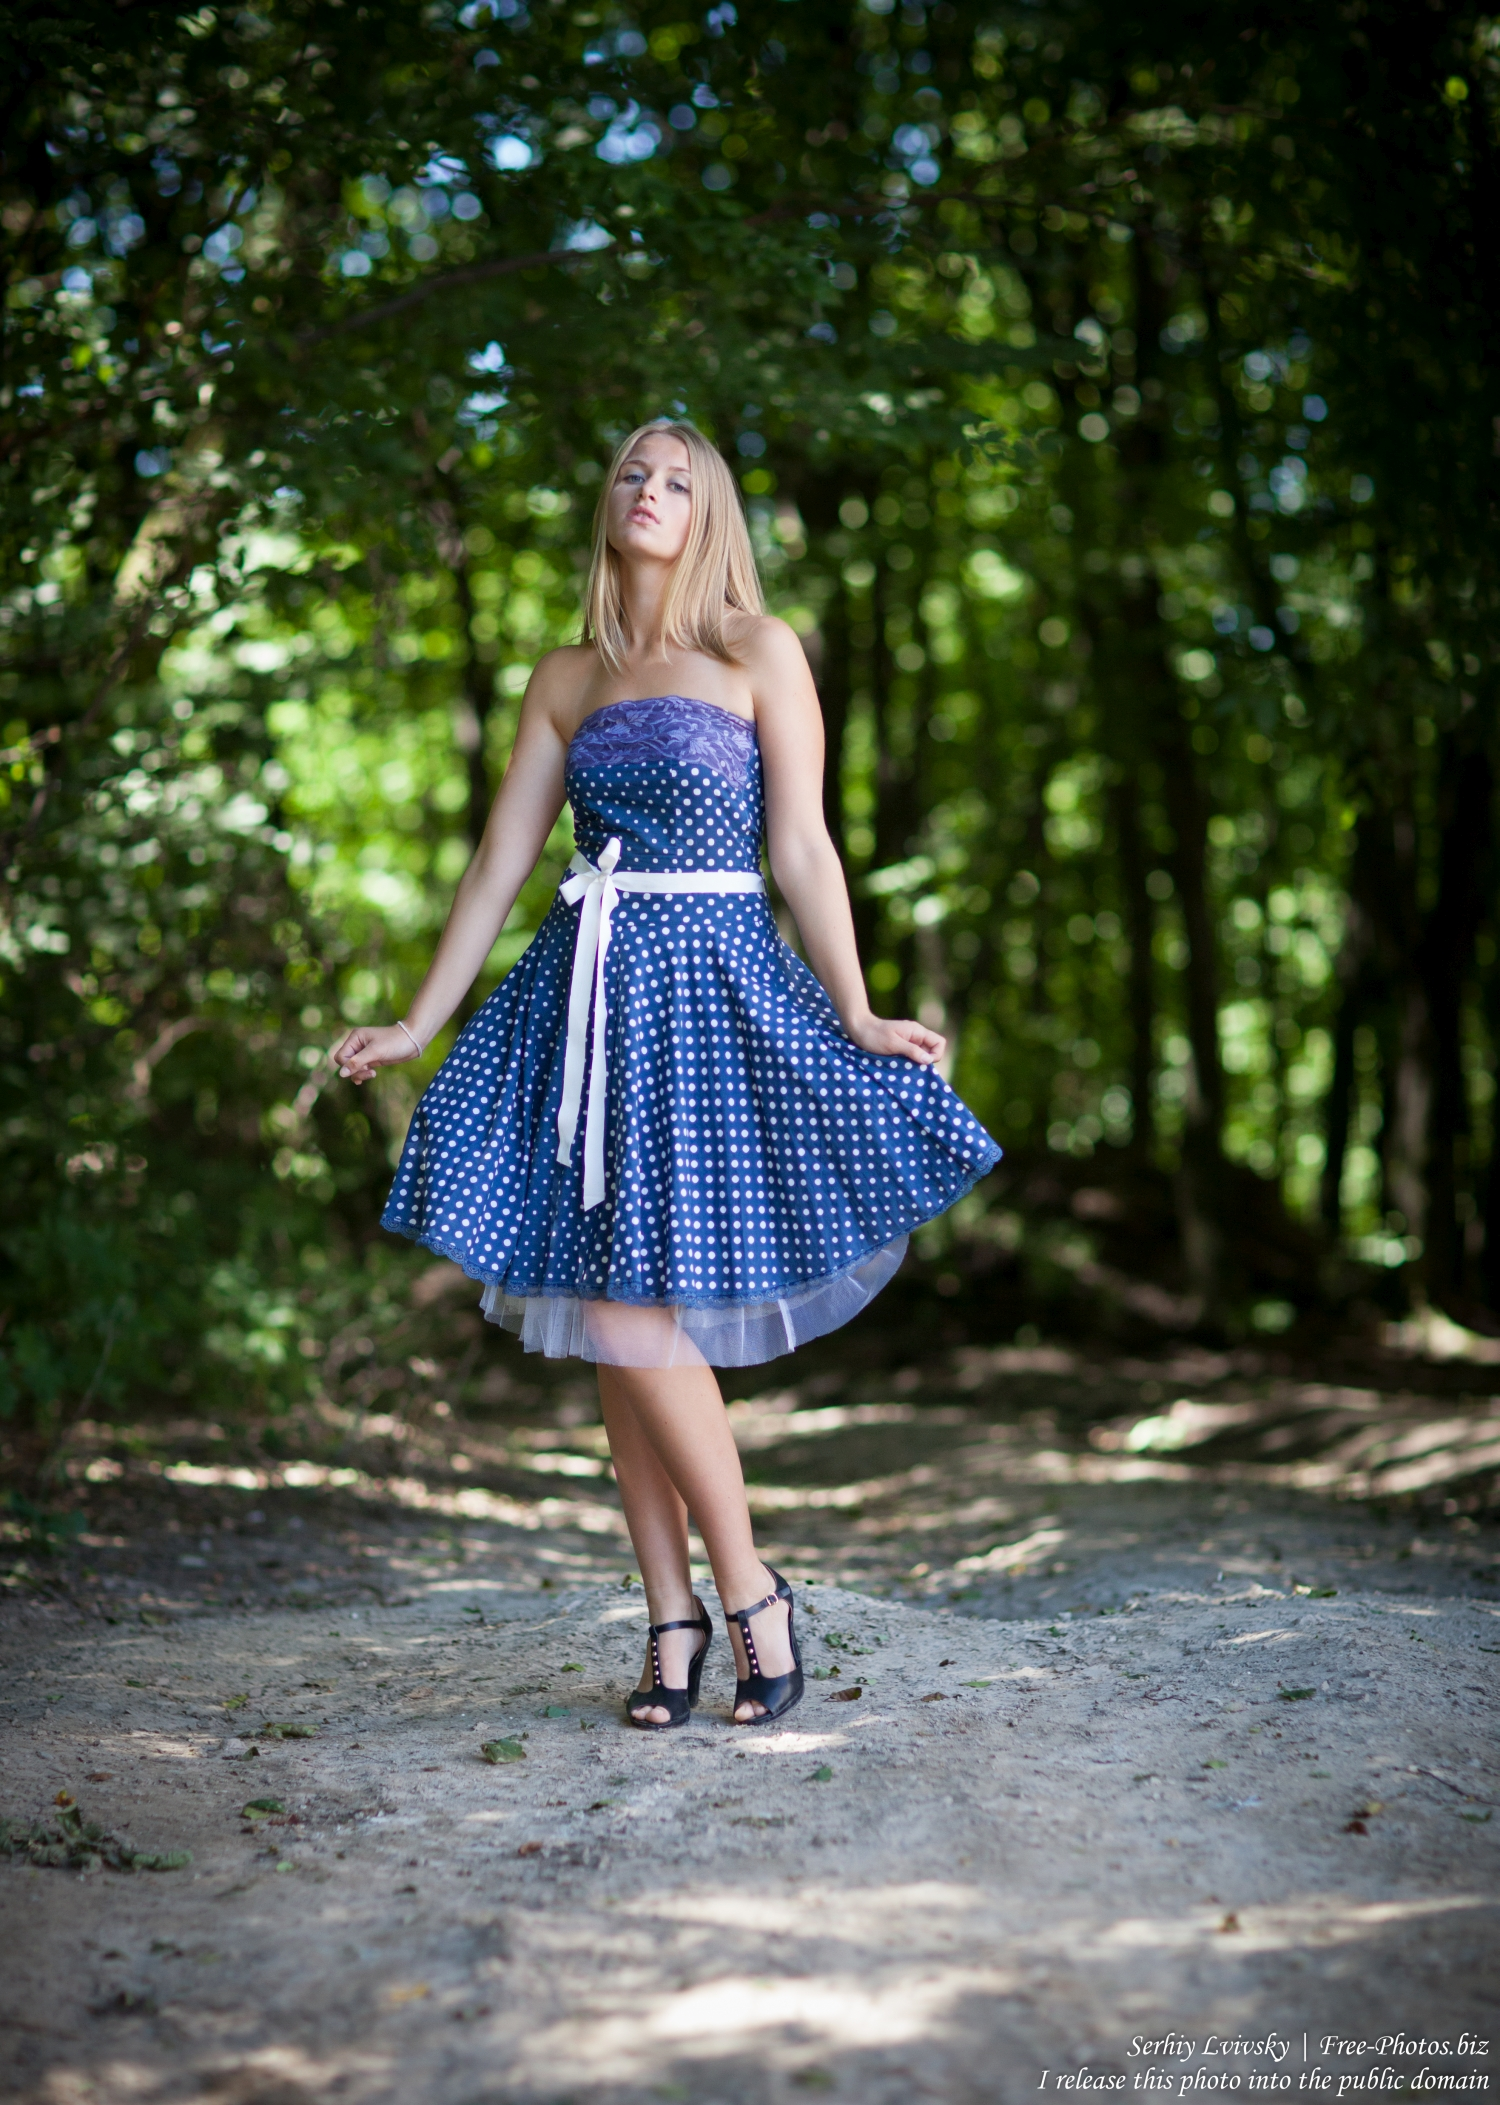 19_a_14-year-old_natural_blond_girl_photographed_by_serhiy_lvivsky_in_july_2016_unprocessed_10